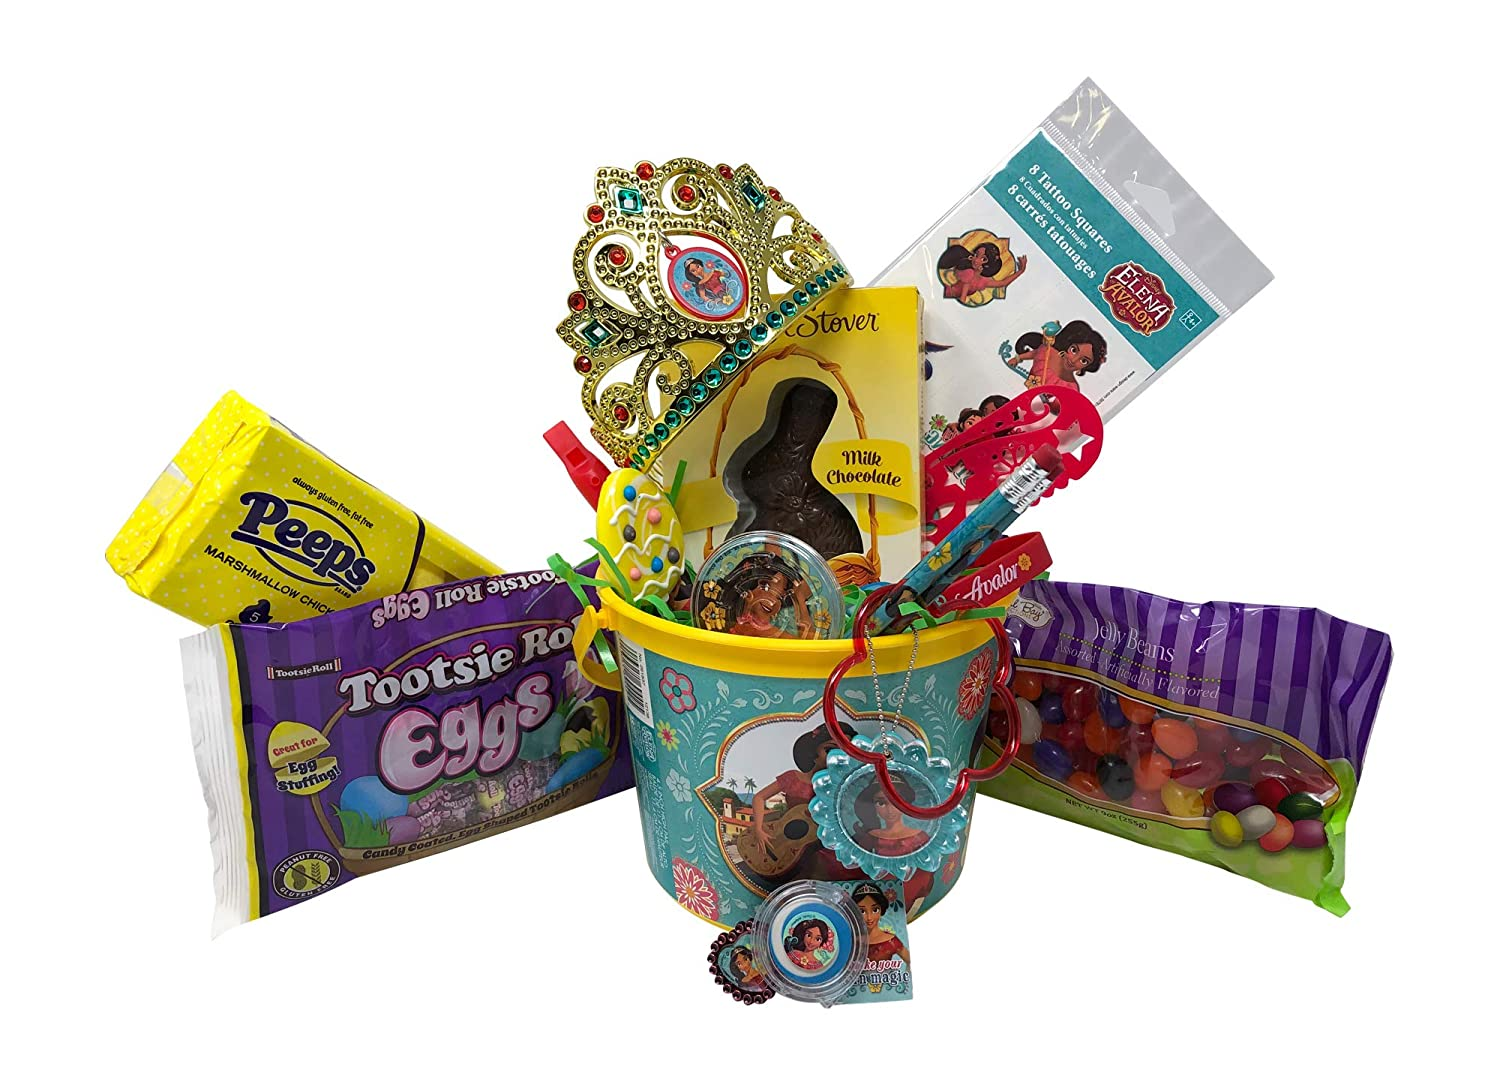 Boys and Girls Construction Equipment Easter Basket Pre Filled with Easter Candy Easter Toys and Easter Basket Grass Easter Basket Filler Great for Kids